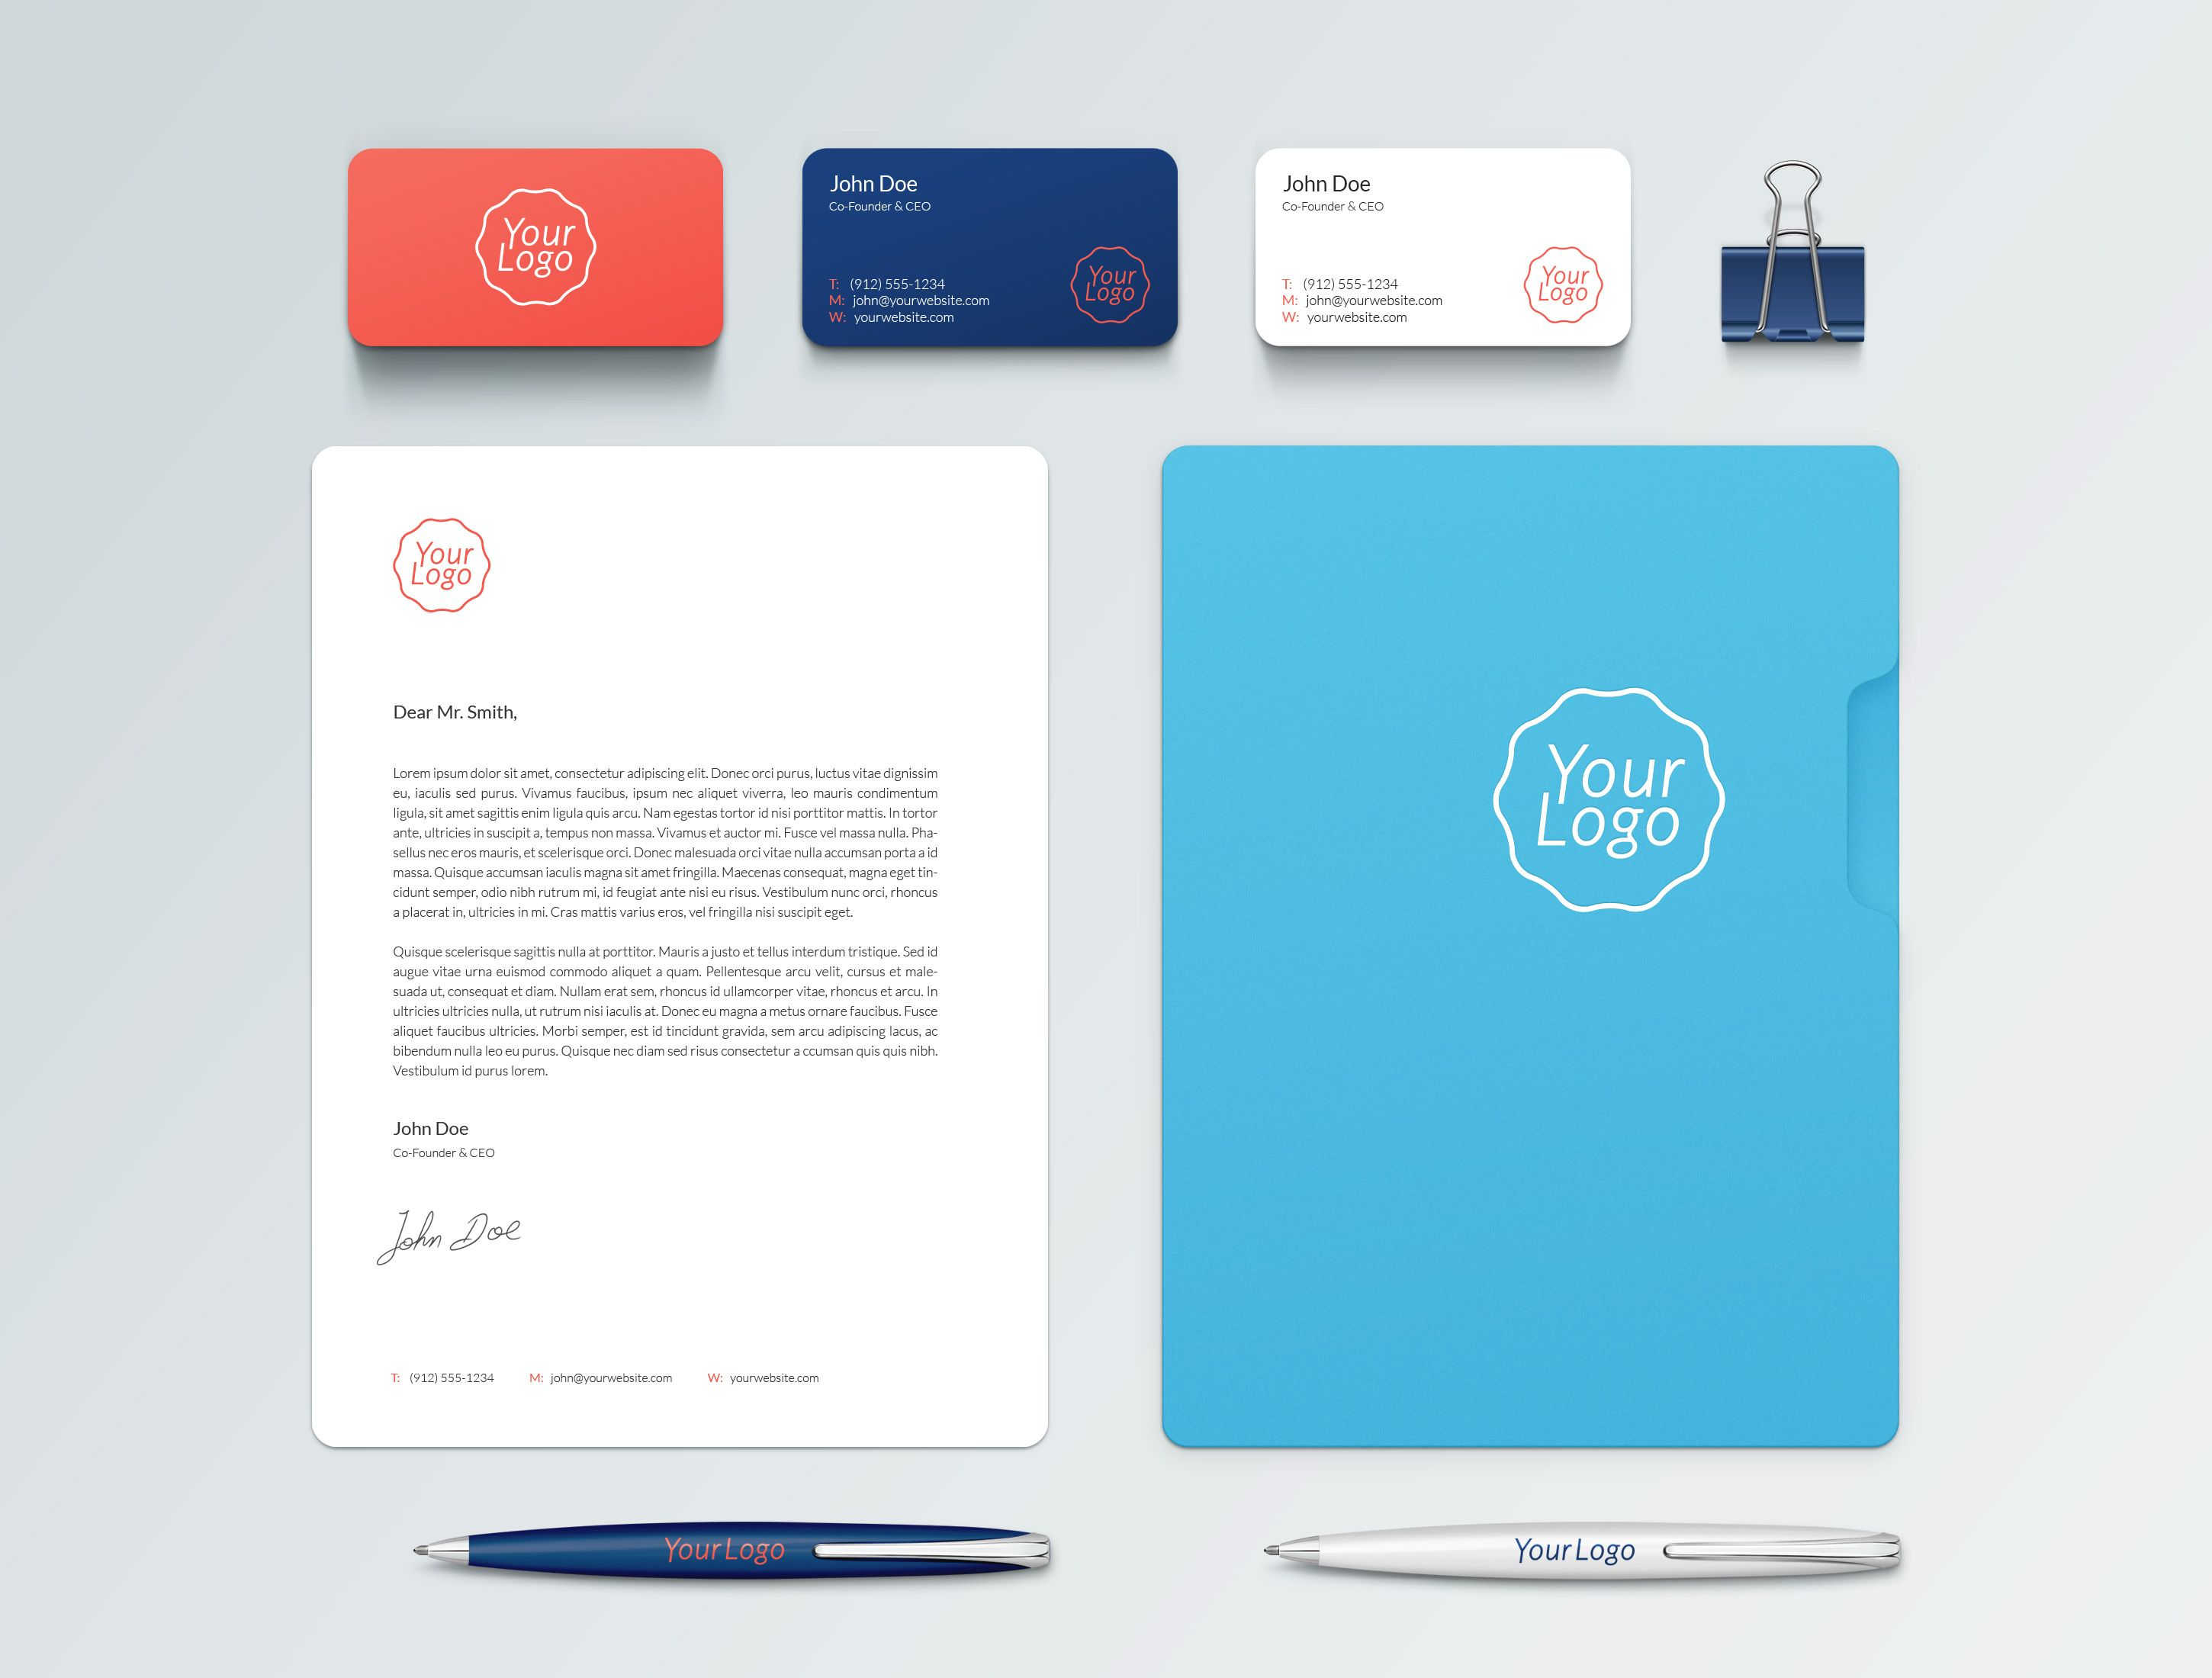 Mockup Psd Downloads Are Everywhere Collections Like This Are Everywhere Too They Are In Very High Deman Branding Mockups Branding Identity Mockup Mockup Psd